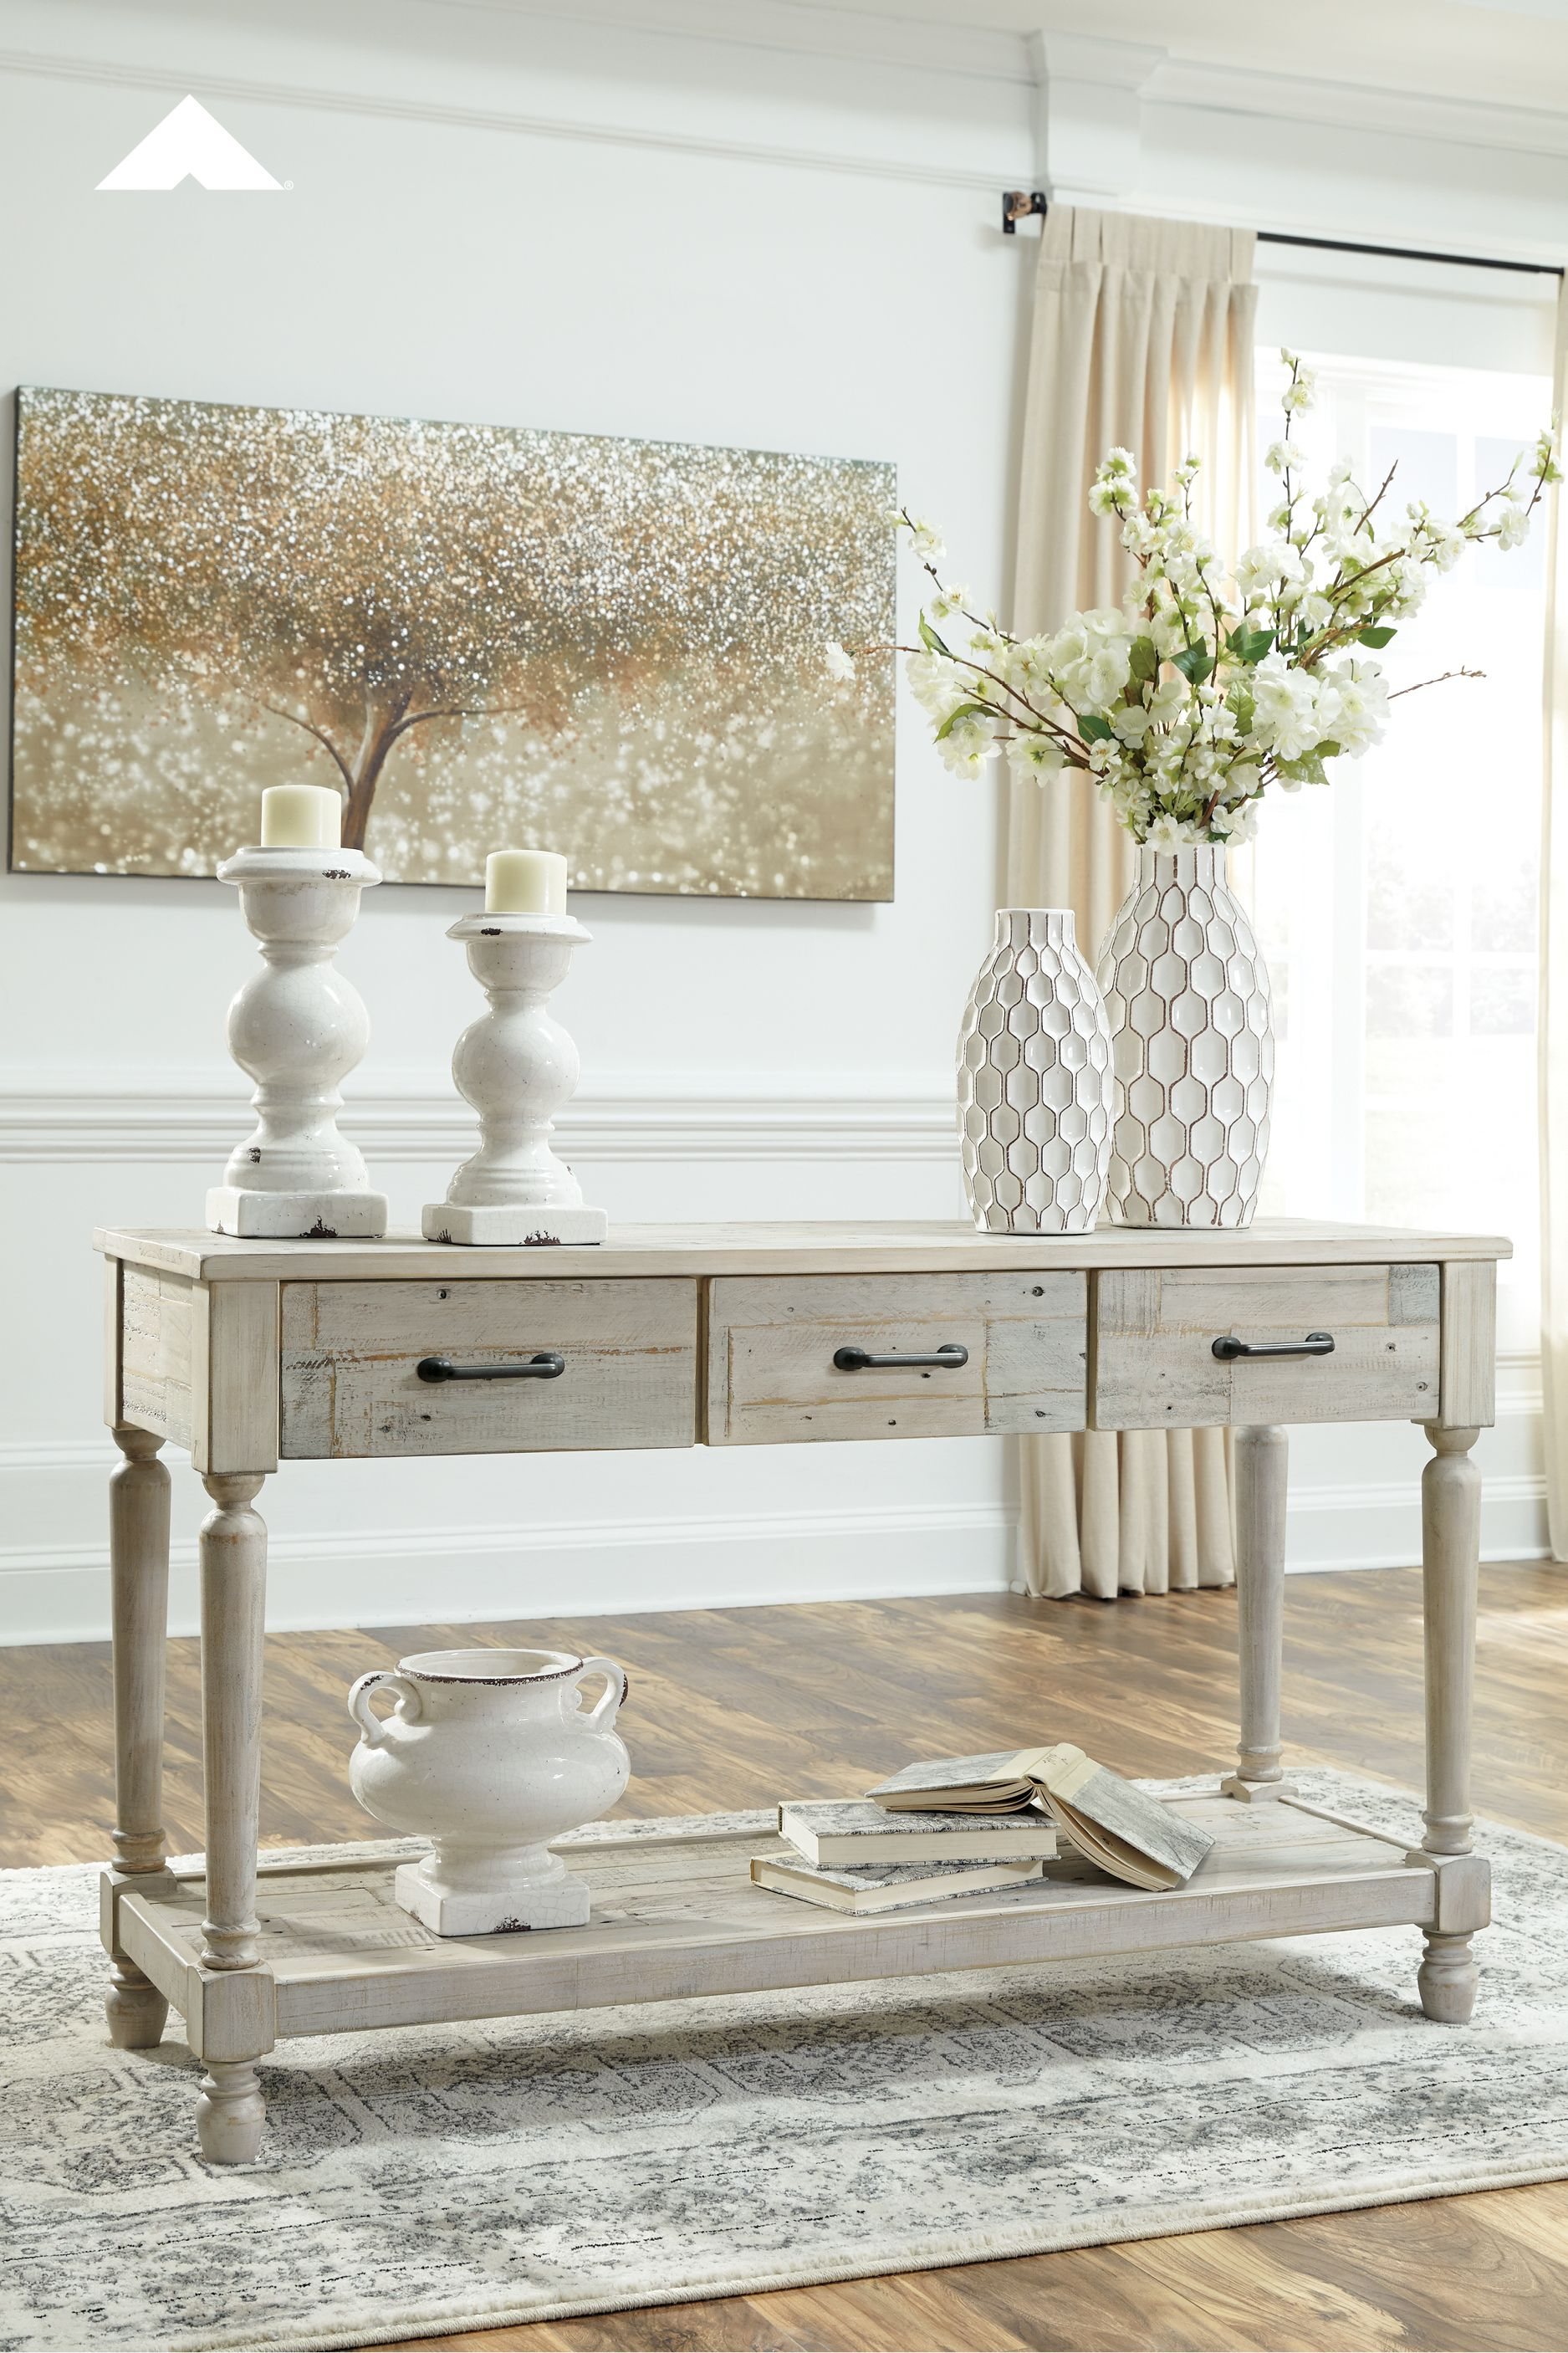 Shawnalore Whitewash Sofa Table By Ashley Furniture Home Decor Accents And Accessories Ideas And Inspiration Ashleyf Wood Console Table Sofa Table Furniture